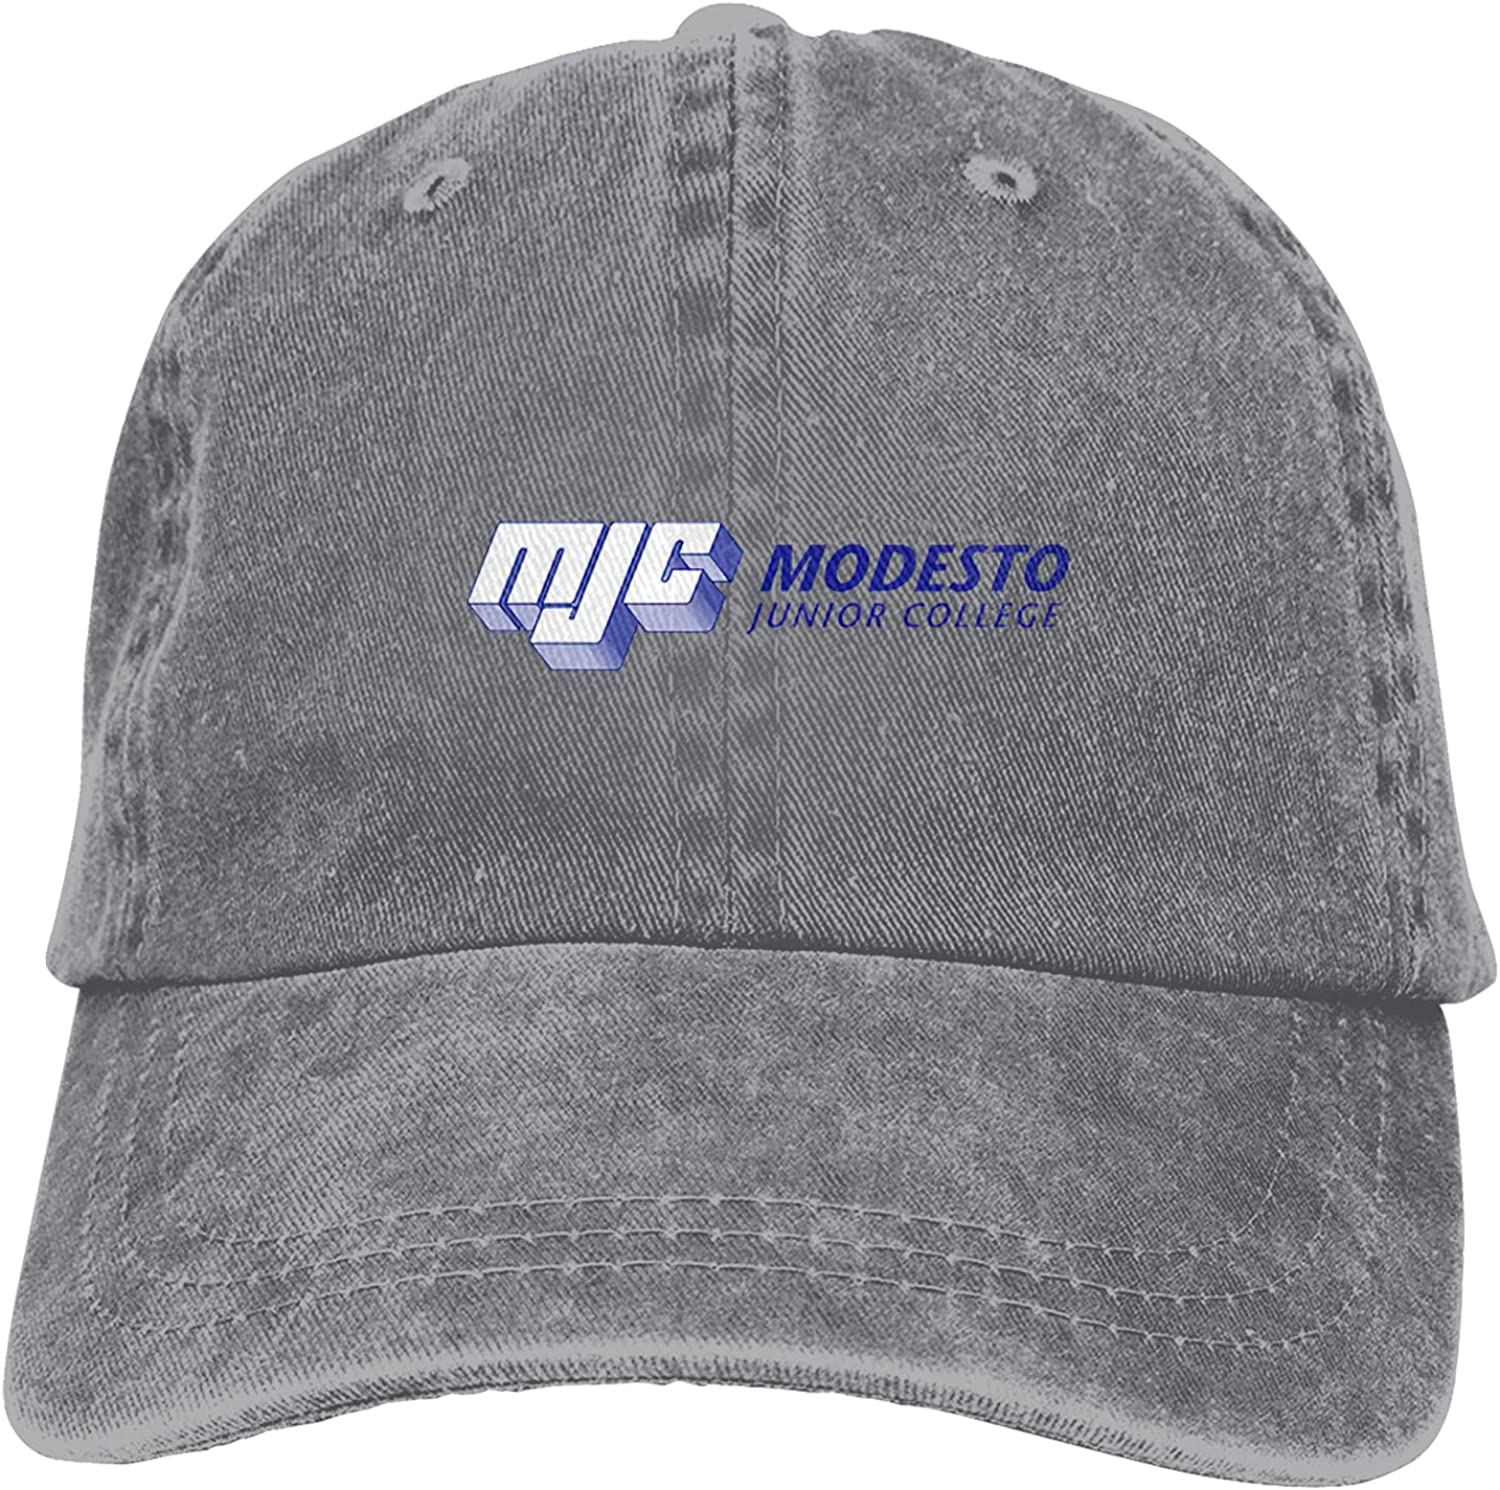 Modesto Junior College Cap for New Free Shipping Suitable Adjust Students. Fresno Mall